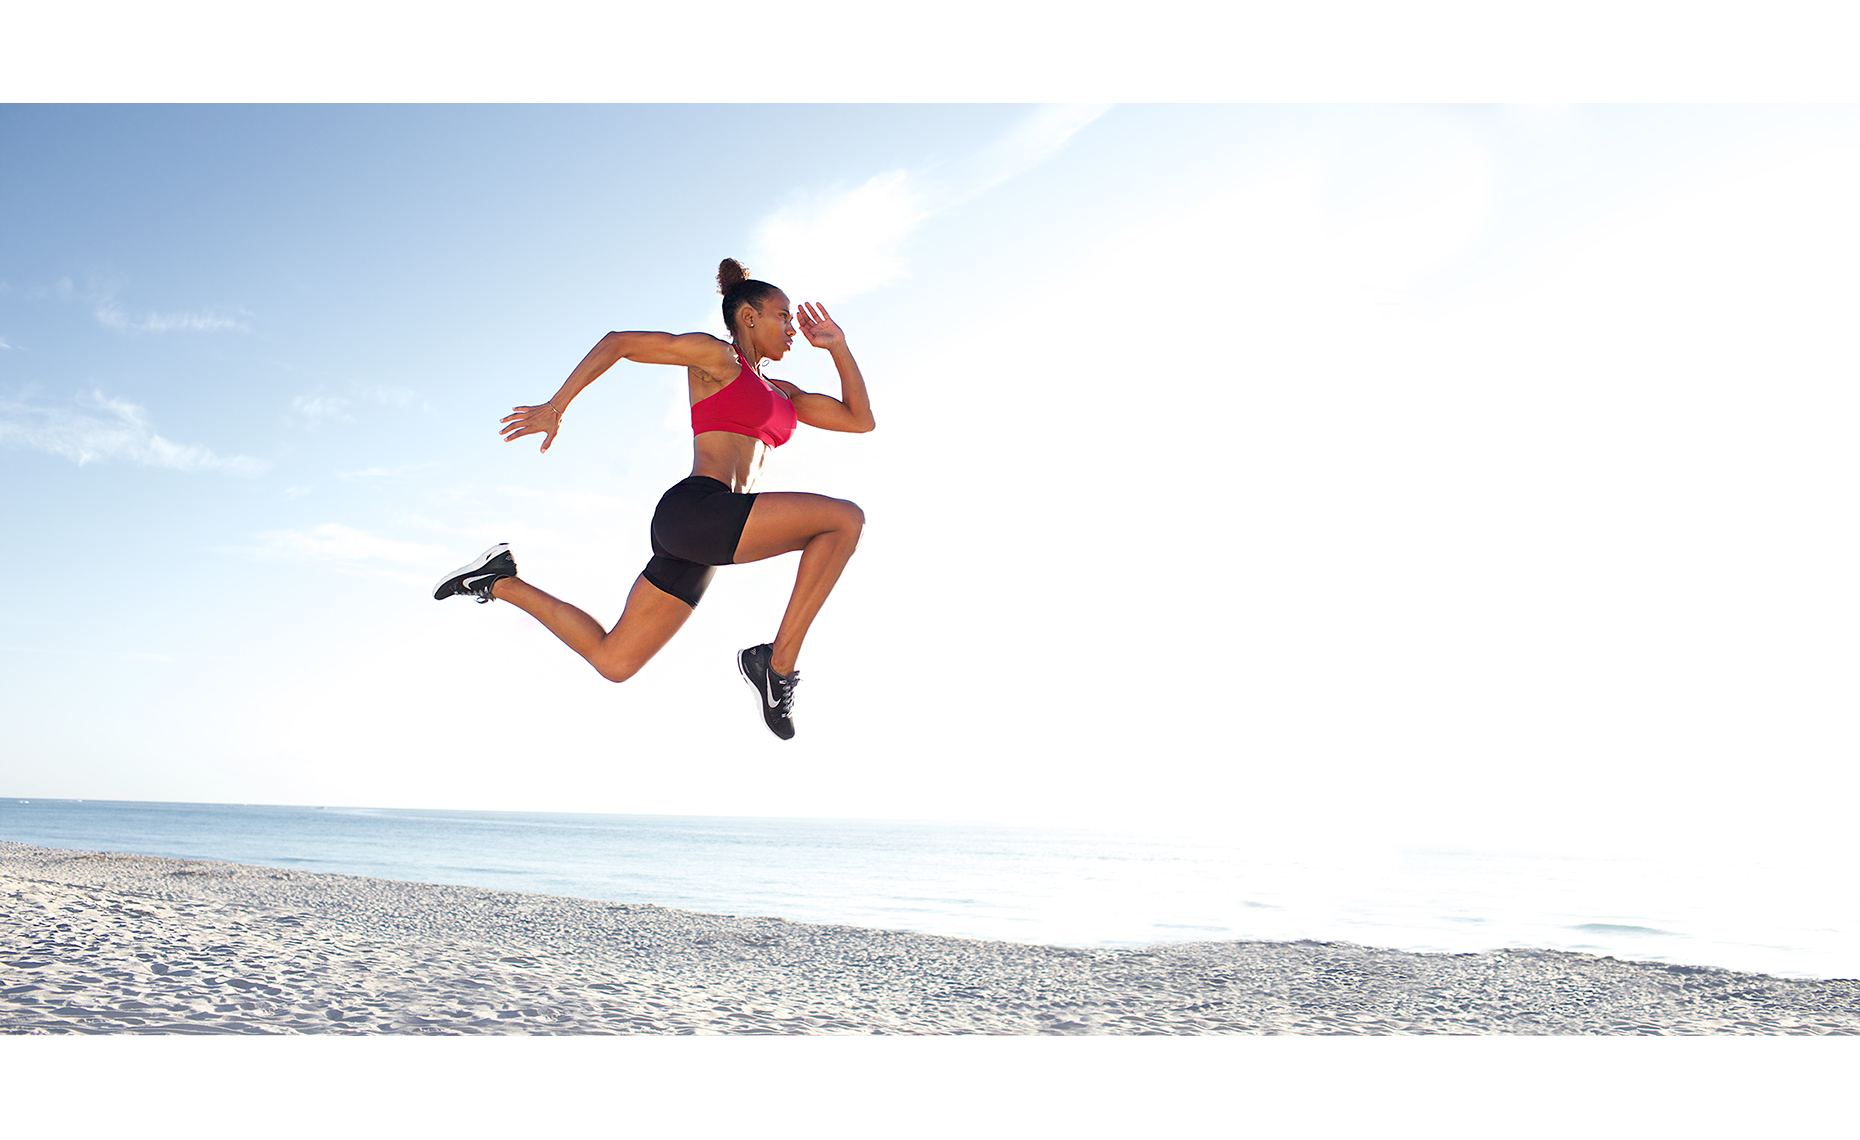 Robert_Holland_female_athlete_jumping-high-in-air-along-shore-MG_9709